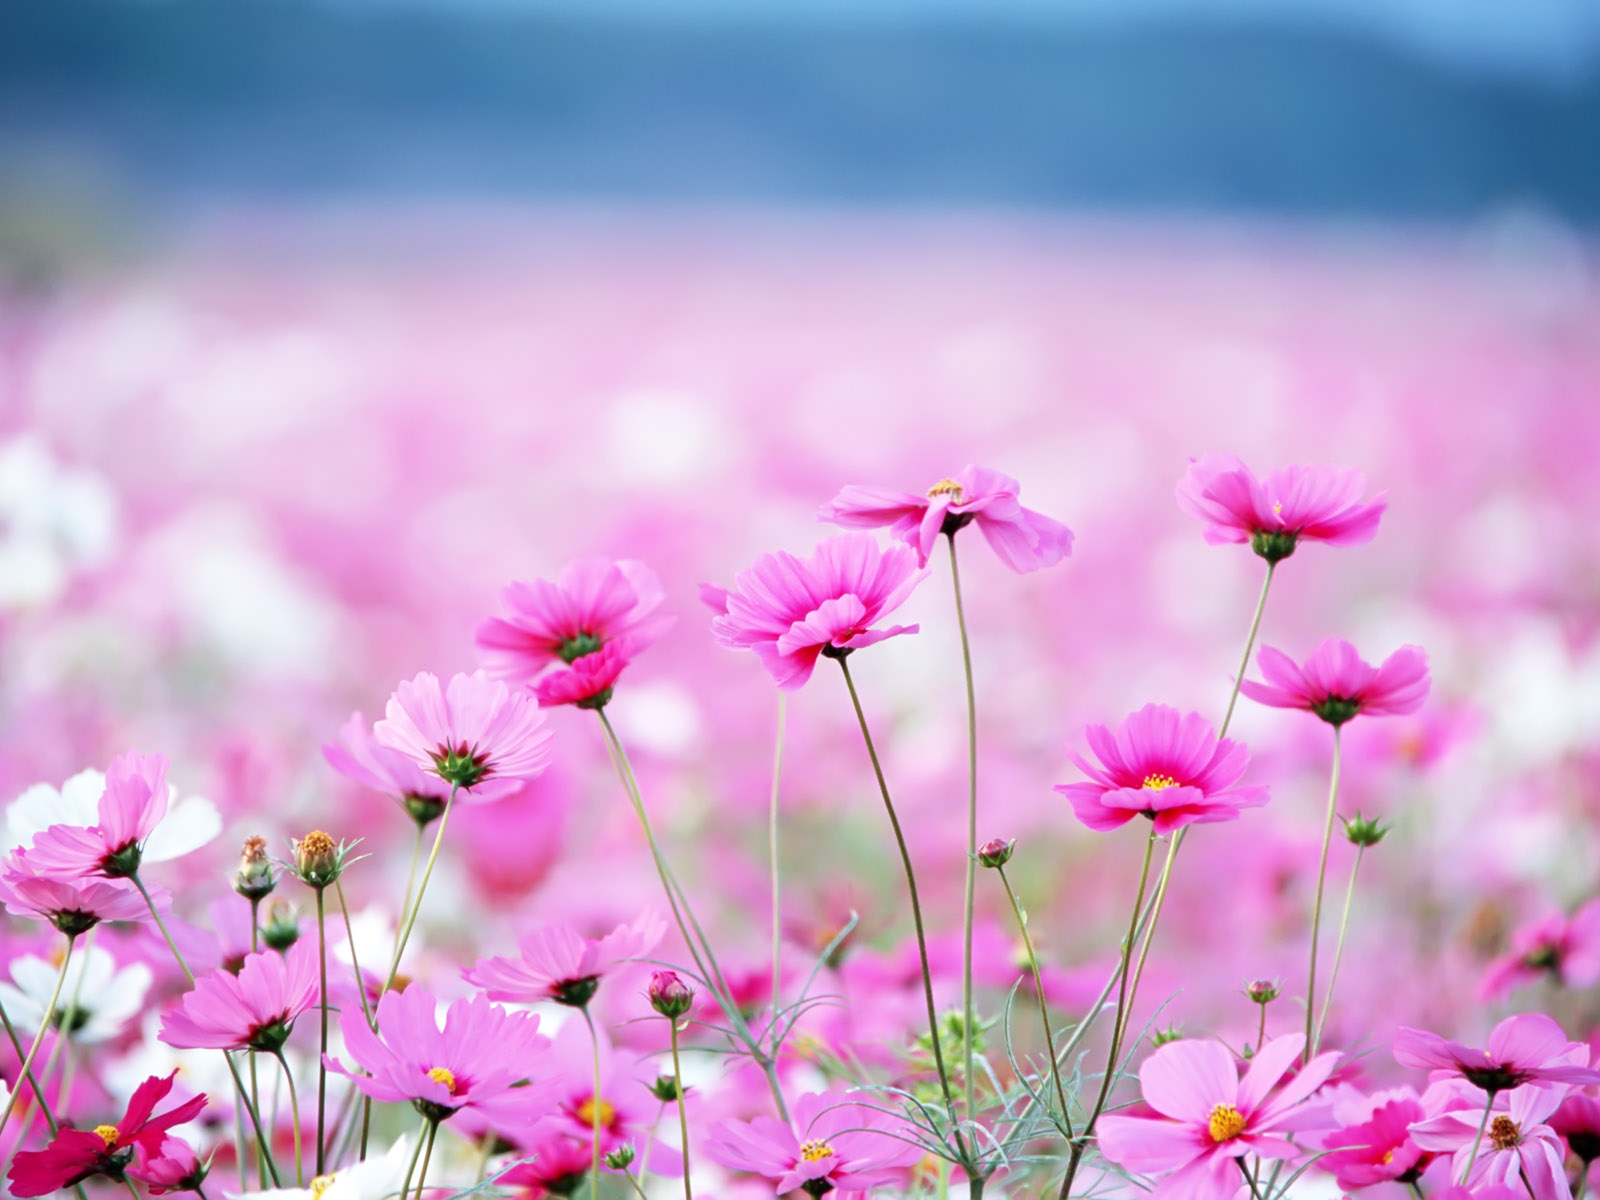 Spring Pink Flower   Wallpaper High Definition High Quality 1600x1200